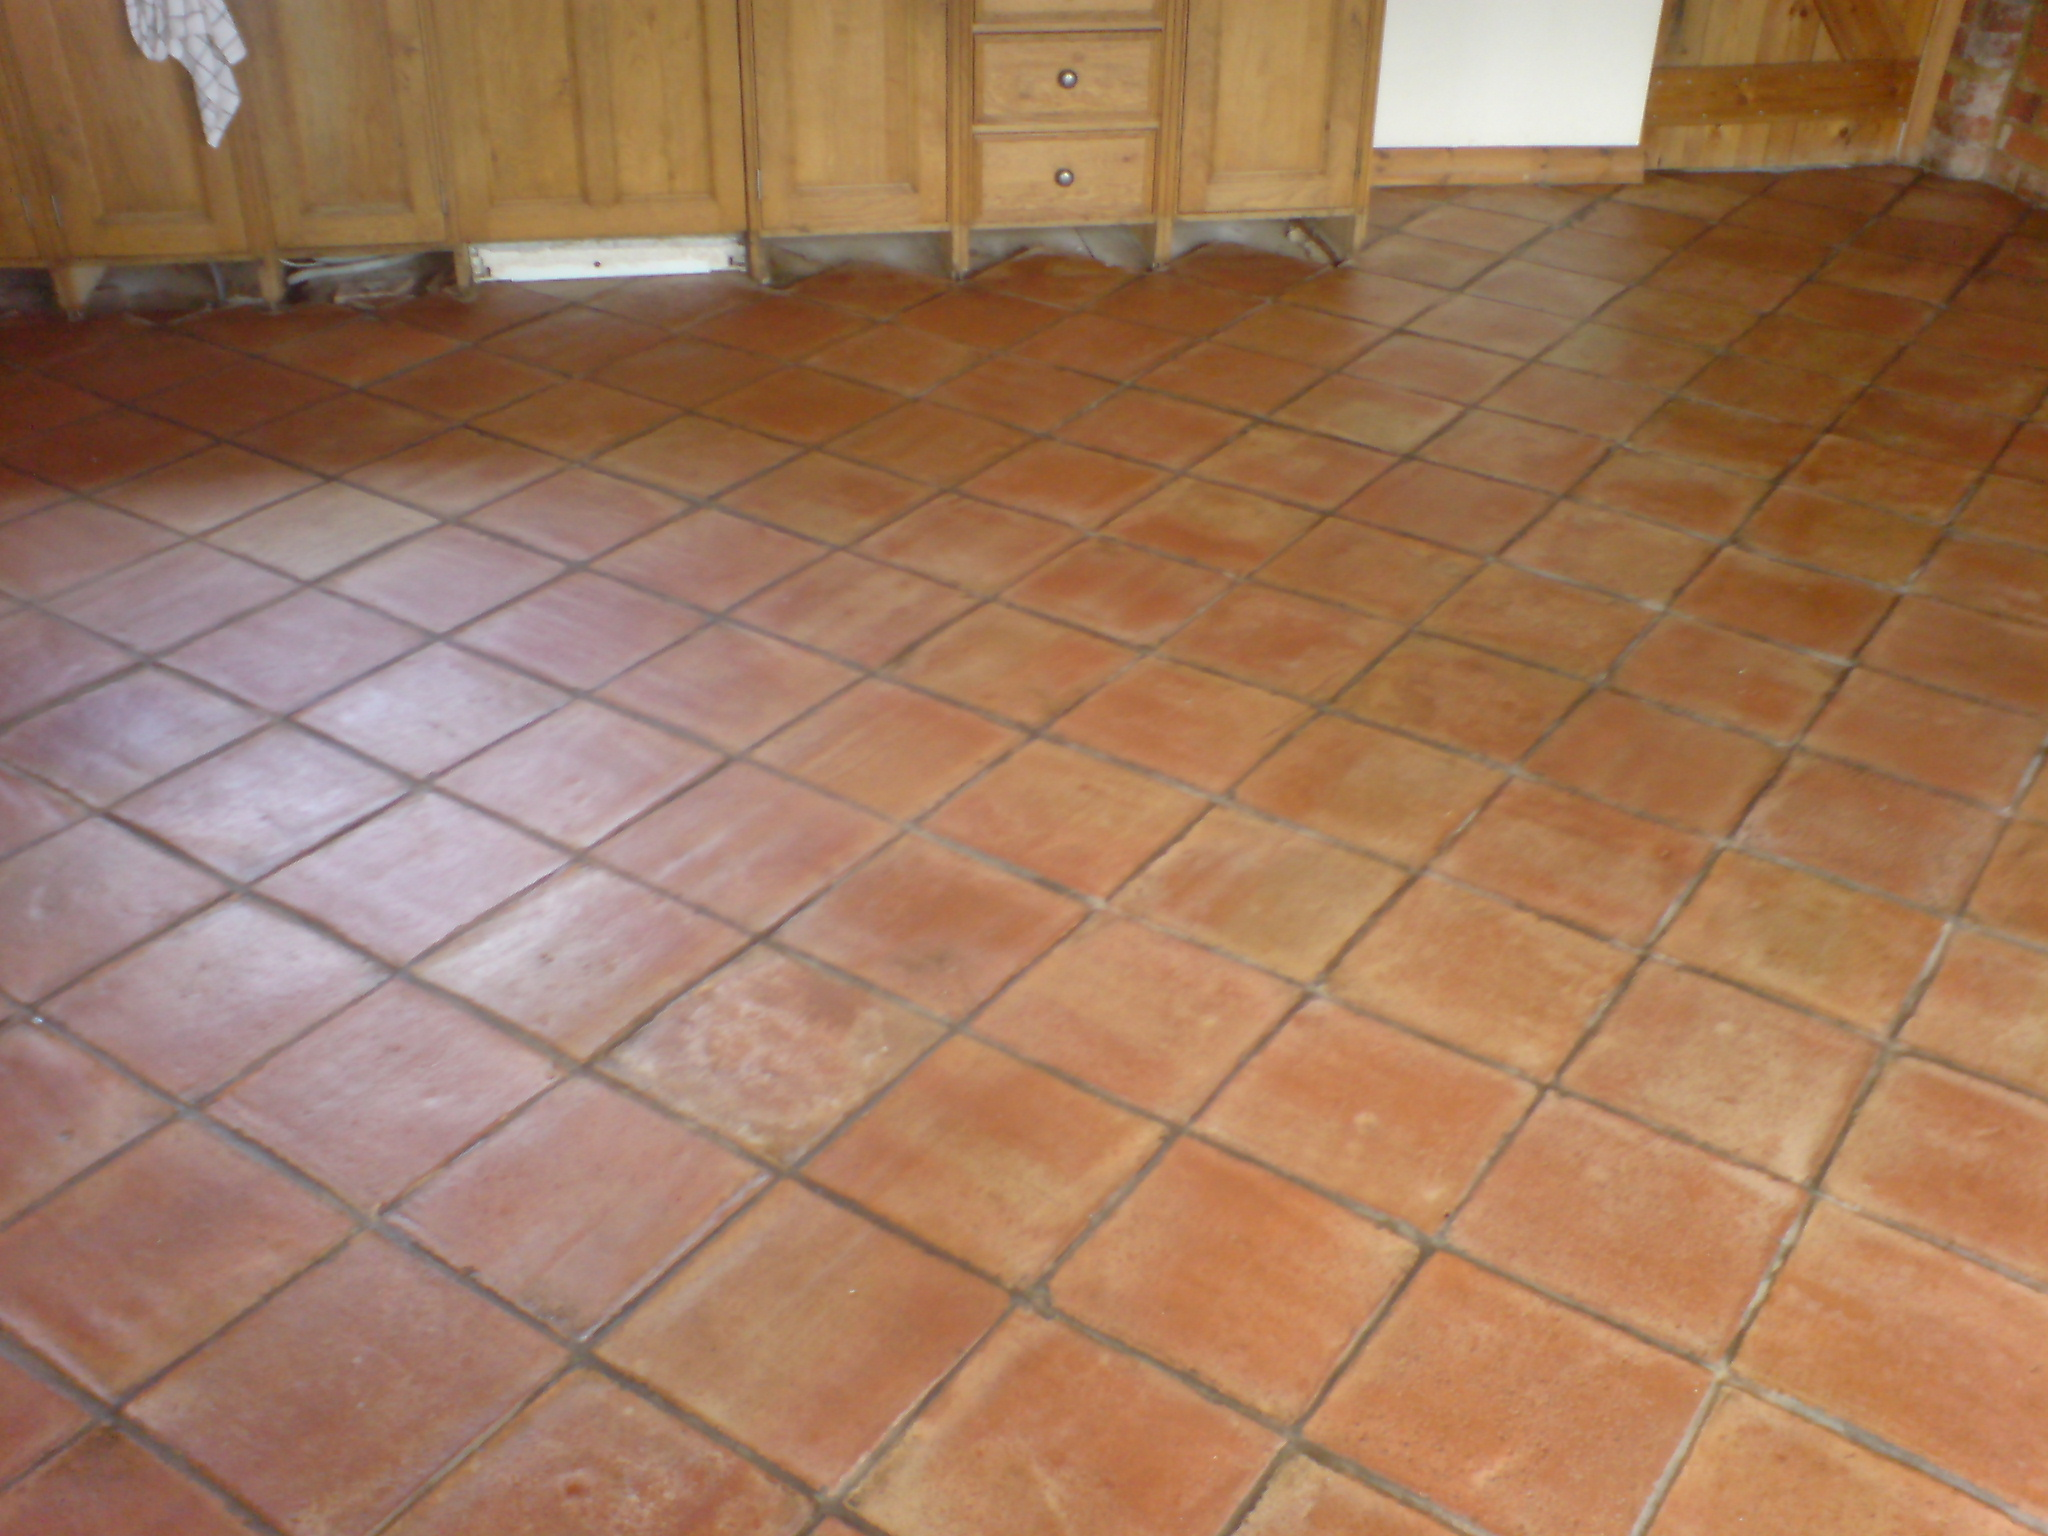 Terracotta Floor Tile Restoration And Renovation Unique Flooring With